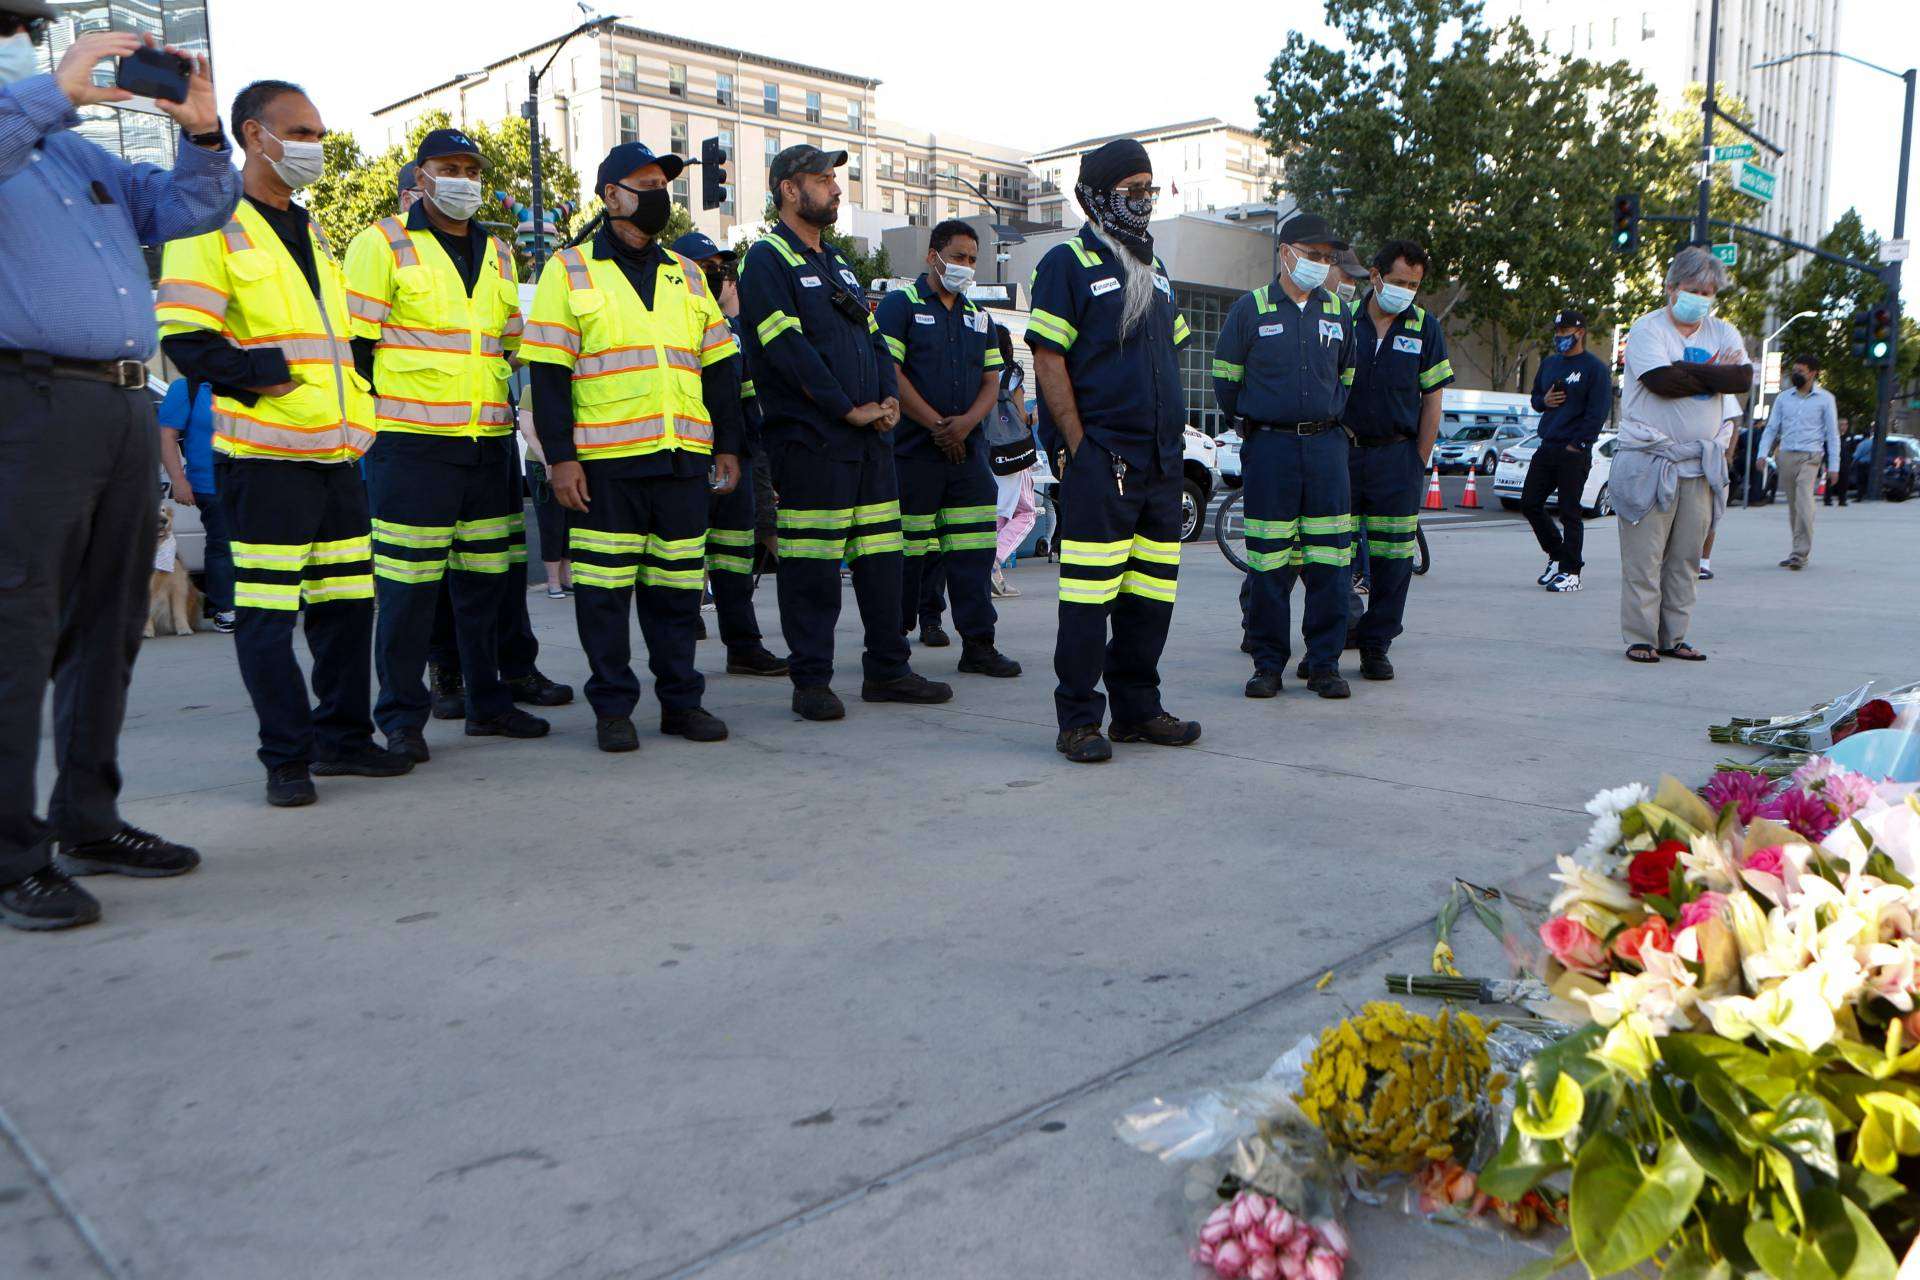 A line of people in uniform -- neon yellow jackets and dark blue pants with reflective stripes at the knees -- stand before a collection of flowers.